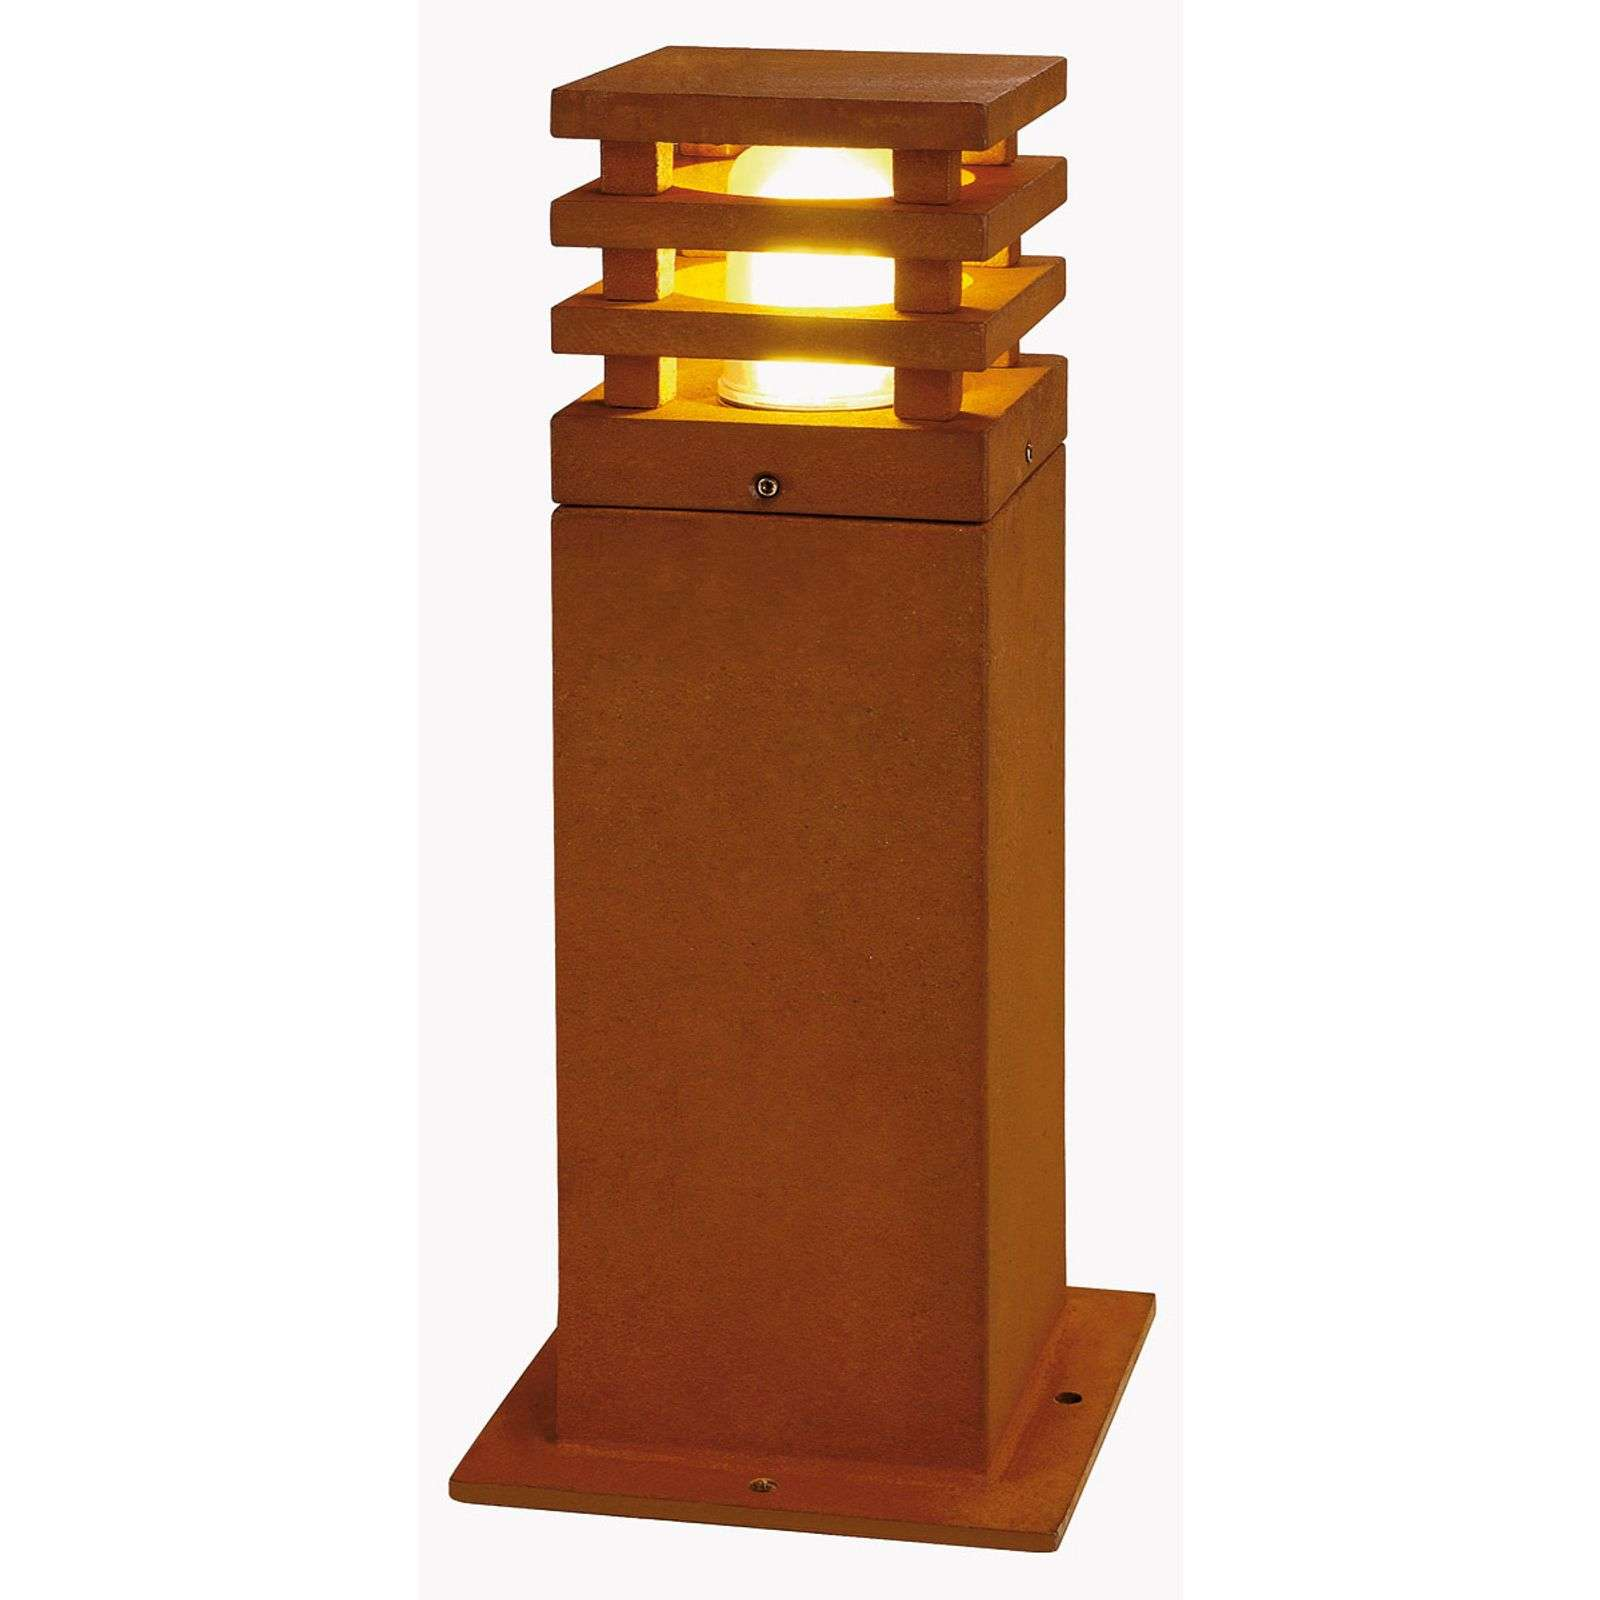 Lamp. LED con piedistallo da 40 cm Rusty quadrata